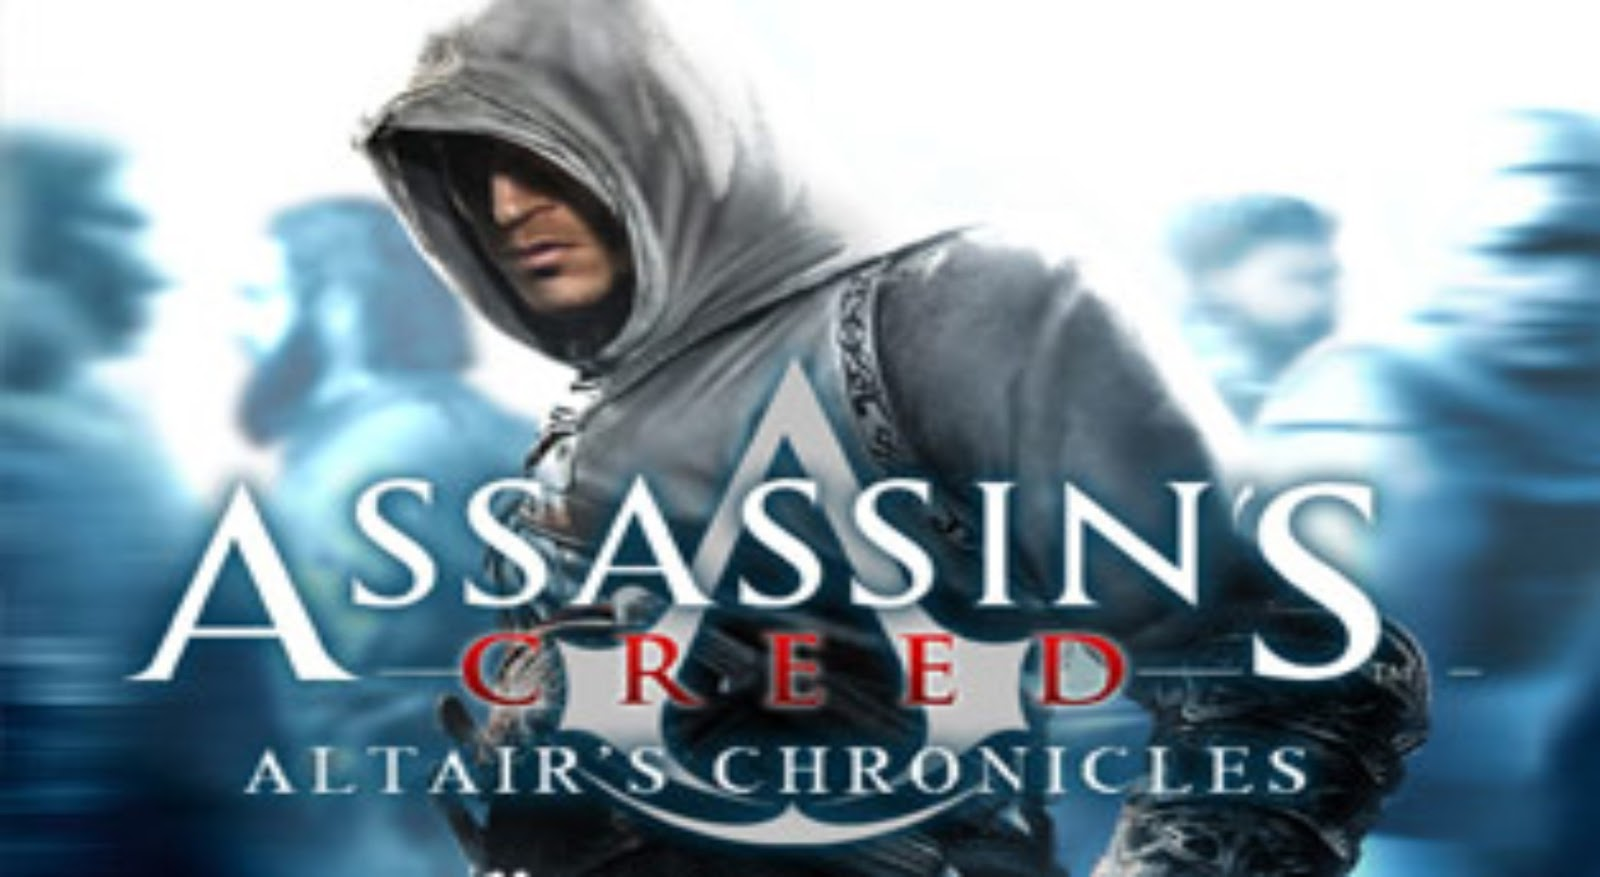 Assassin's Creed™ - Altaïr's Chronicles HD Apk + SD Data | Android Games Download